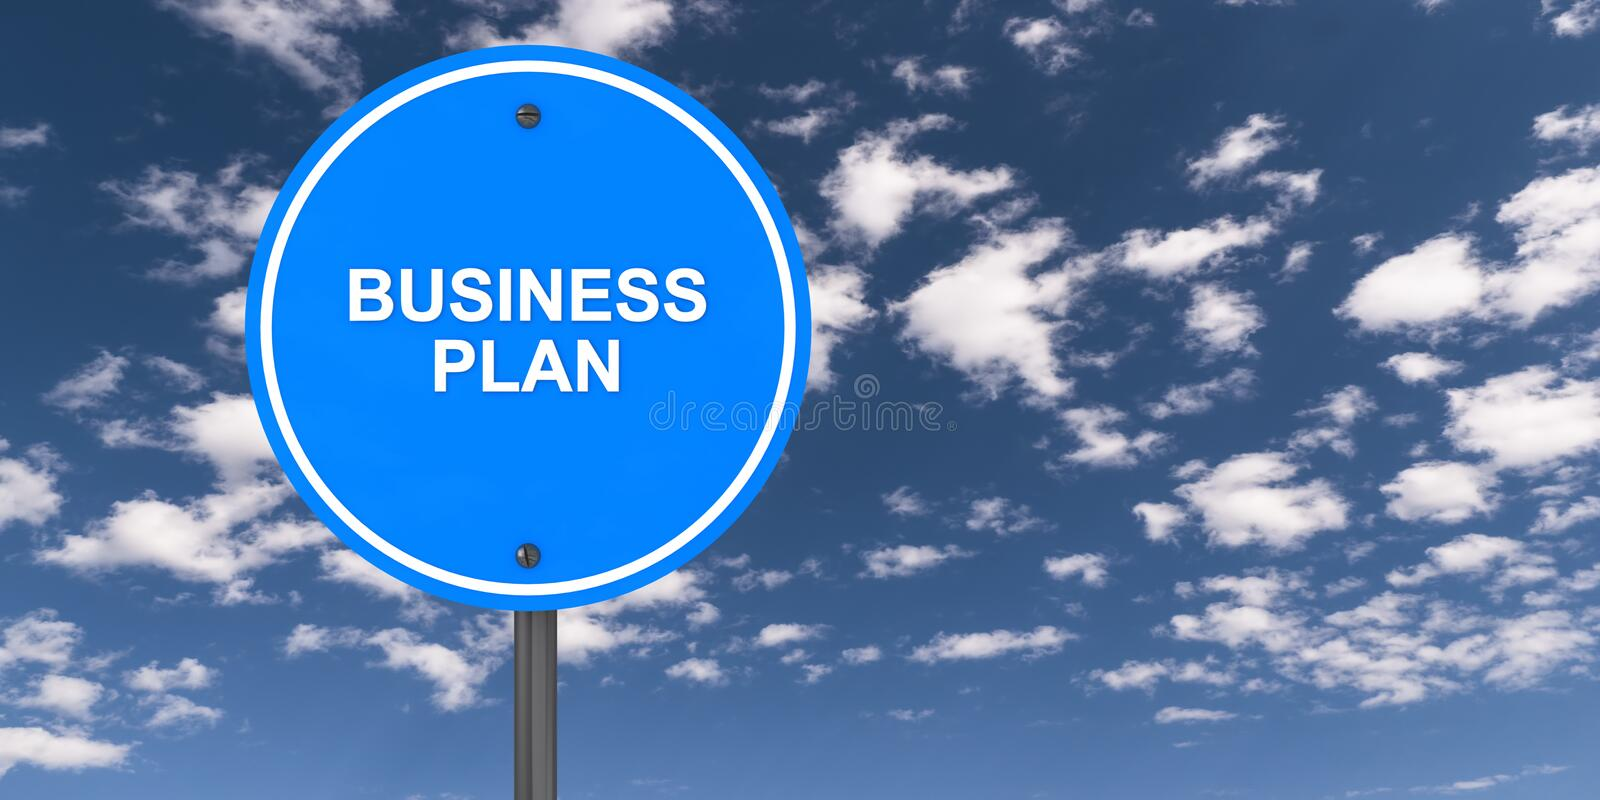 Business plan traffic sign stock photo